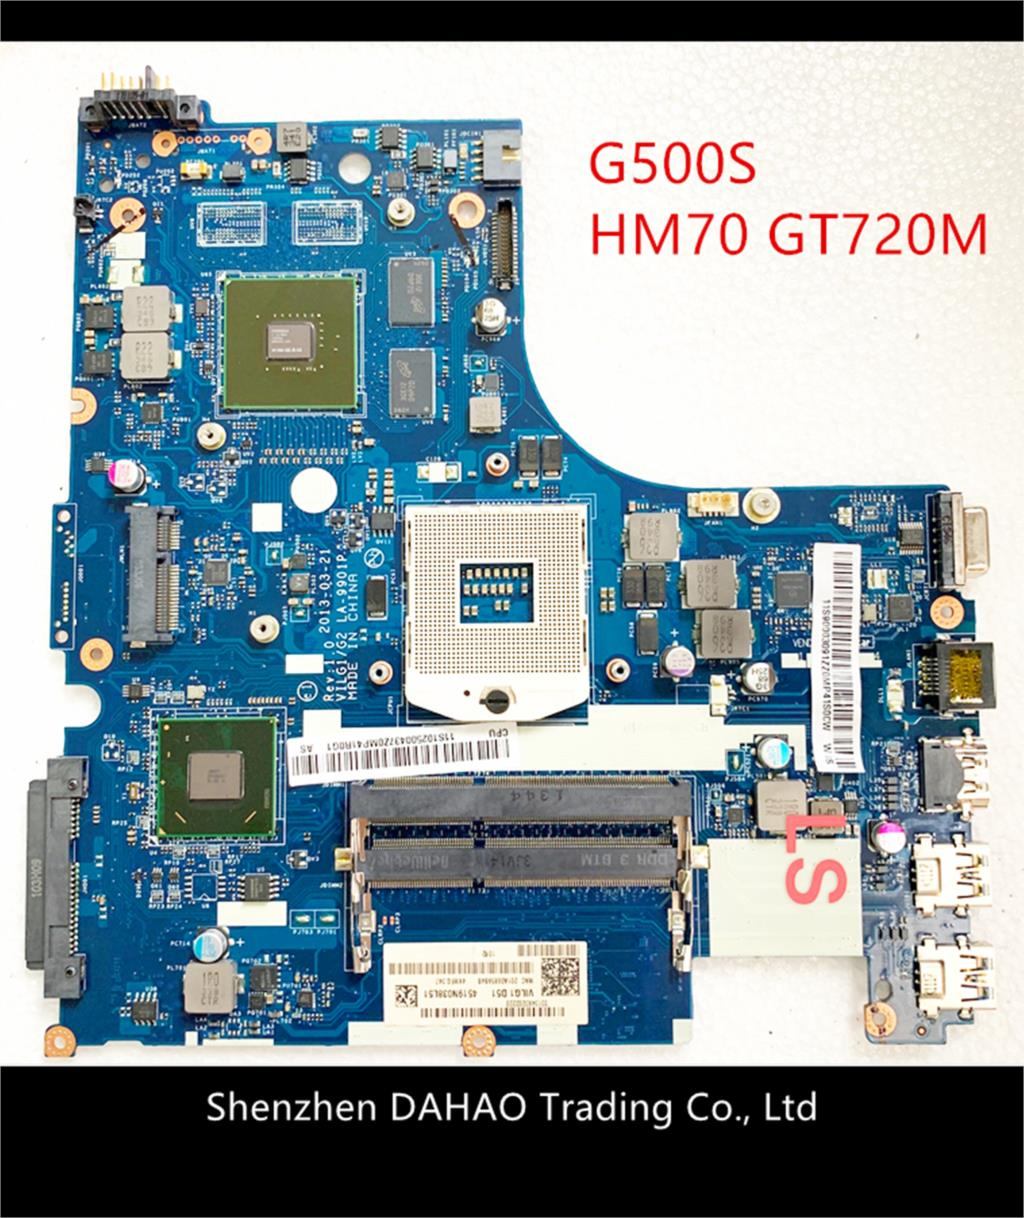 90003085 VILG1/G2 LA-9901P Mainboard For Lenovo G500S laptop motherboard with HM70 GT720M 1GB DDR3 100% Full Tested 1